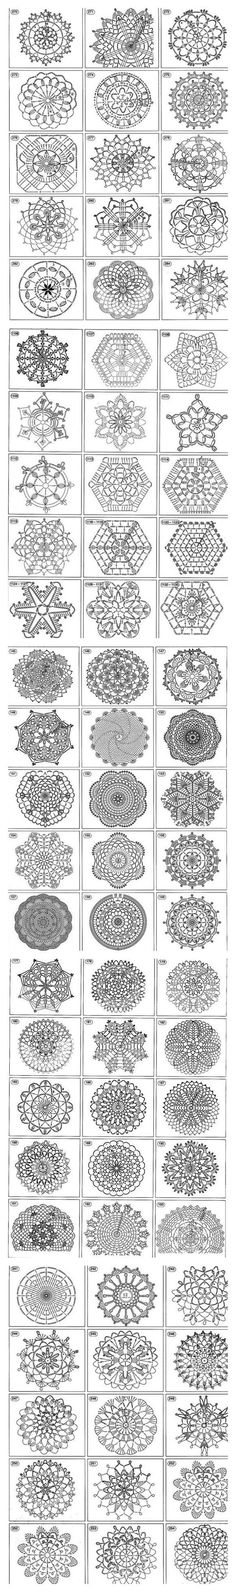 Over 1400 free crochet motif, afghan squares, coasters, snowflakes, doilies, triangles stitch chart diagram patterns. Great for baby blankets, afghans, table cloths, towel edging, Christmas. ornaments etc. by sgadouryeast